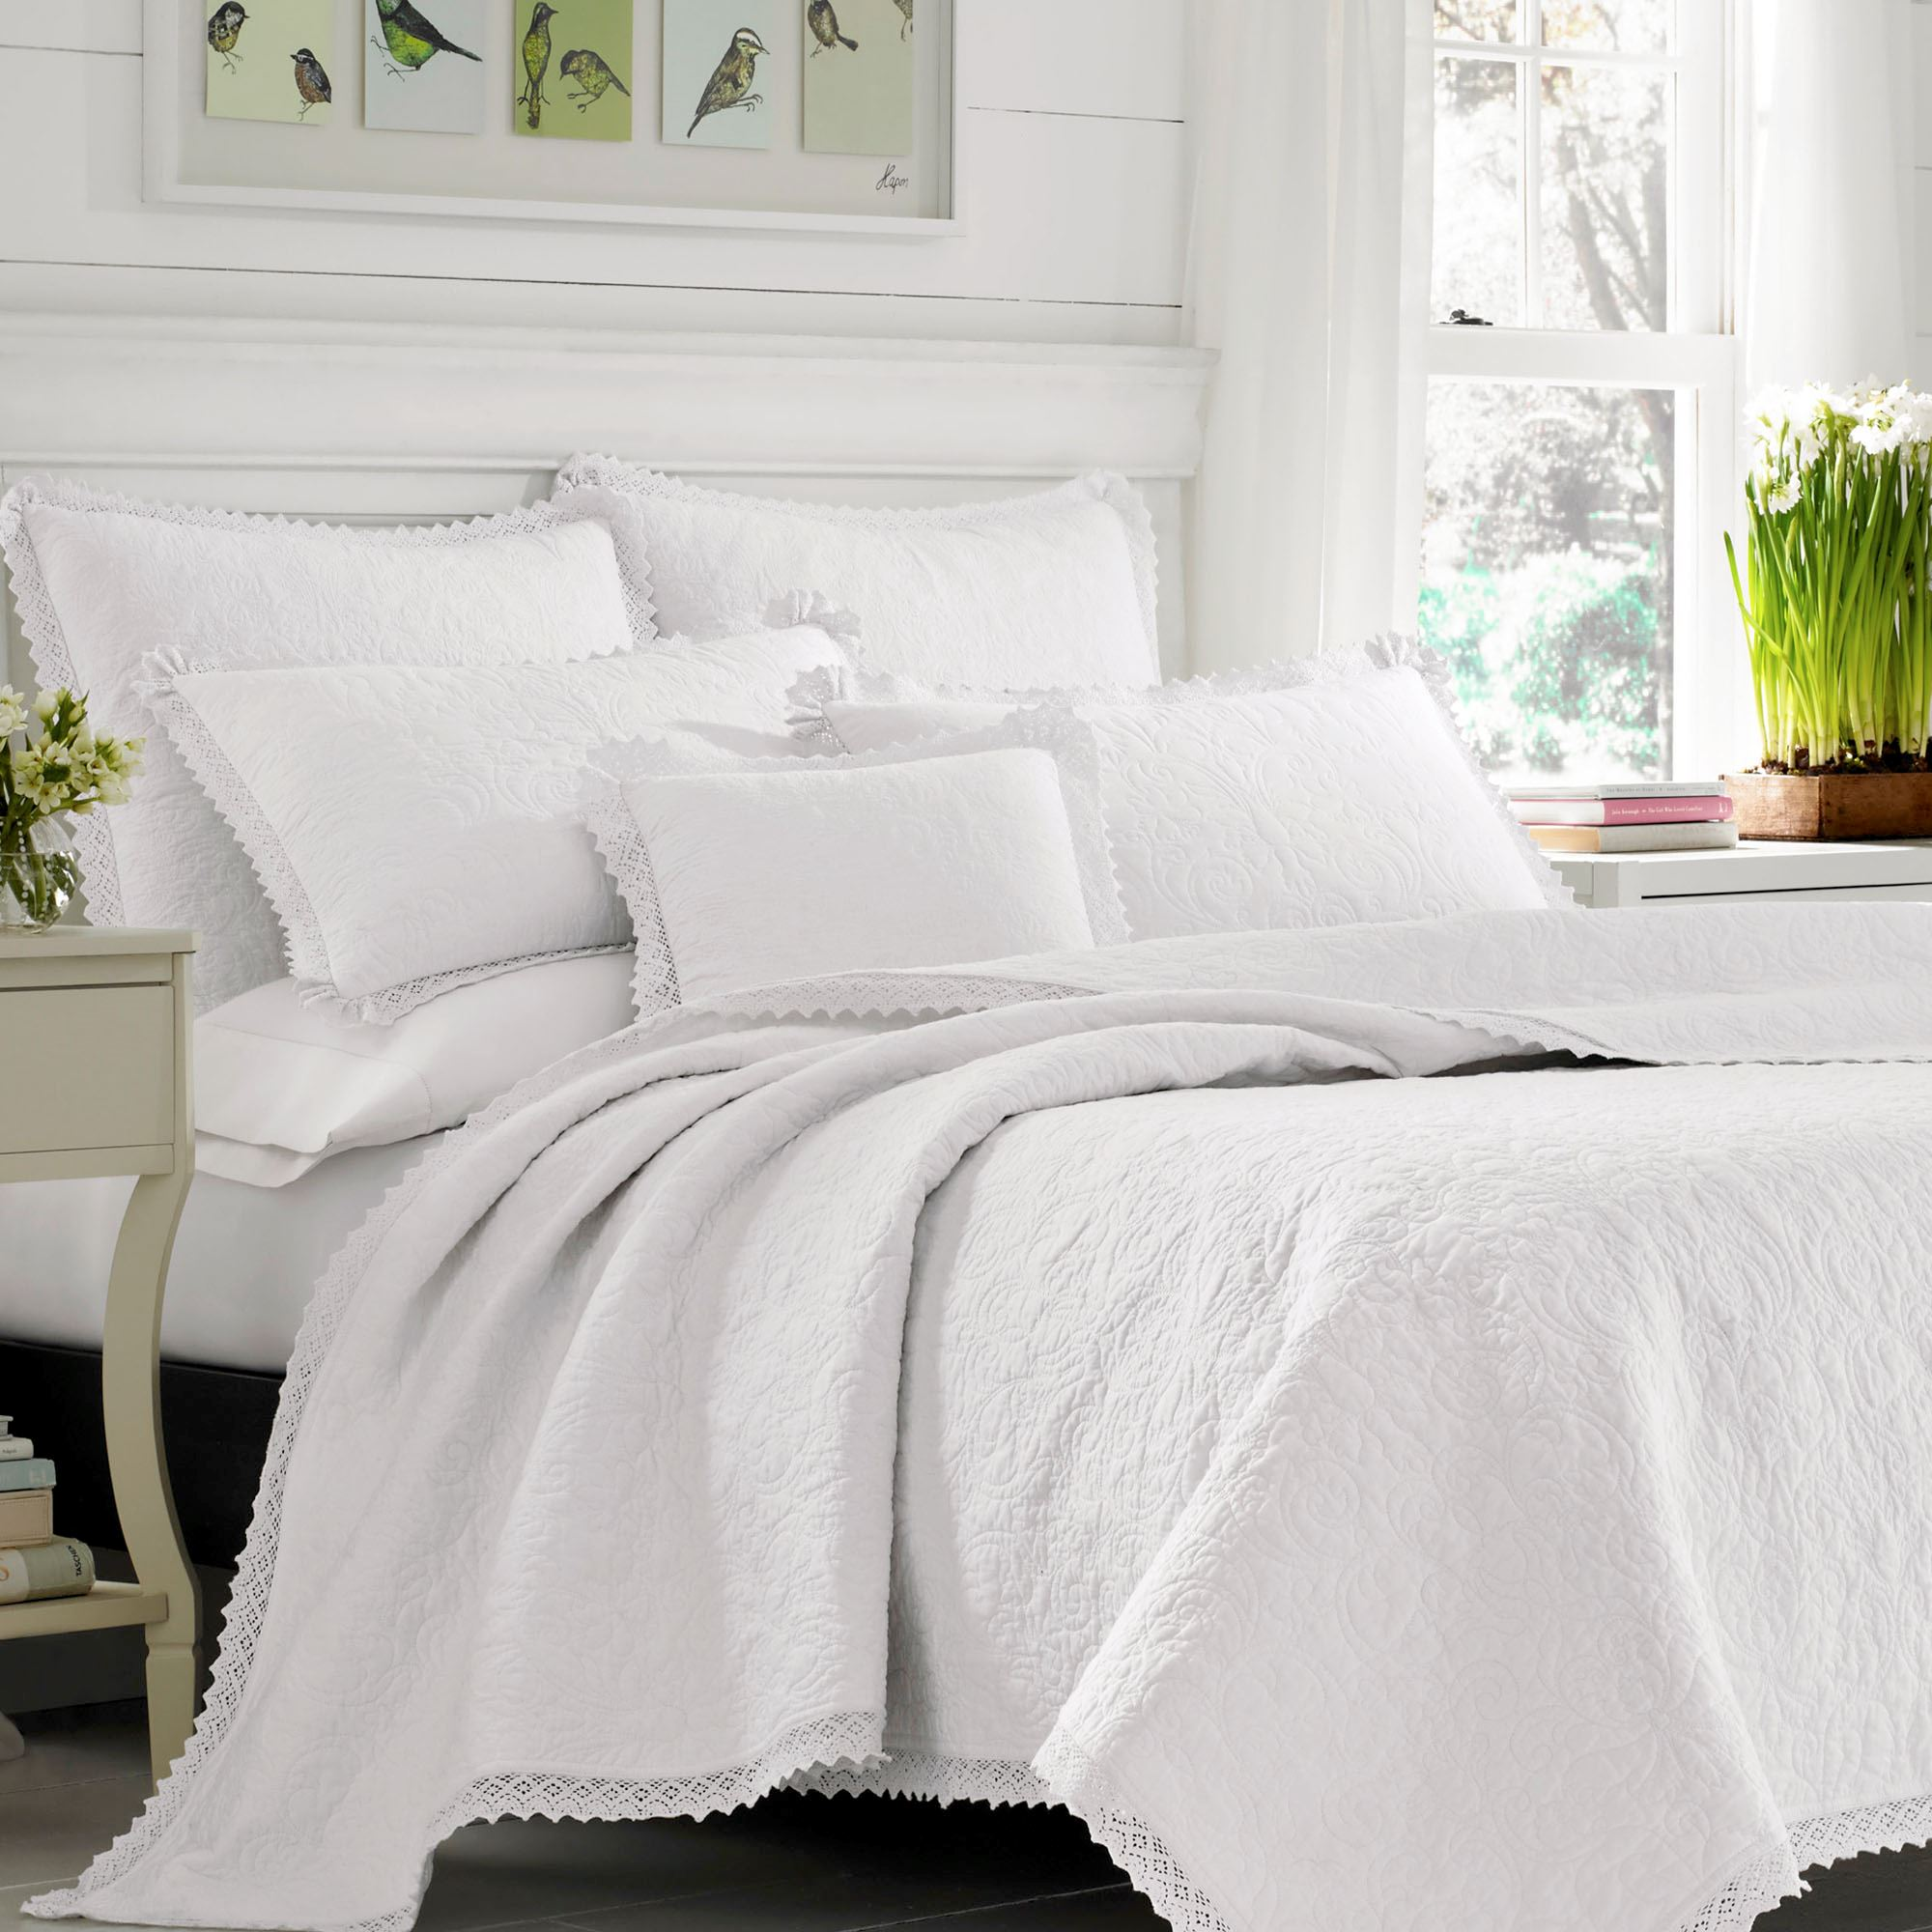 Heirloom Crochet Solid White Quilt Set By Laura Ashley